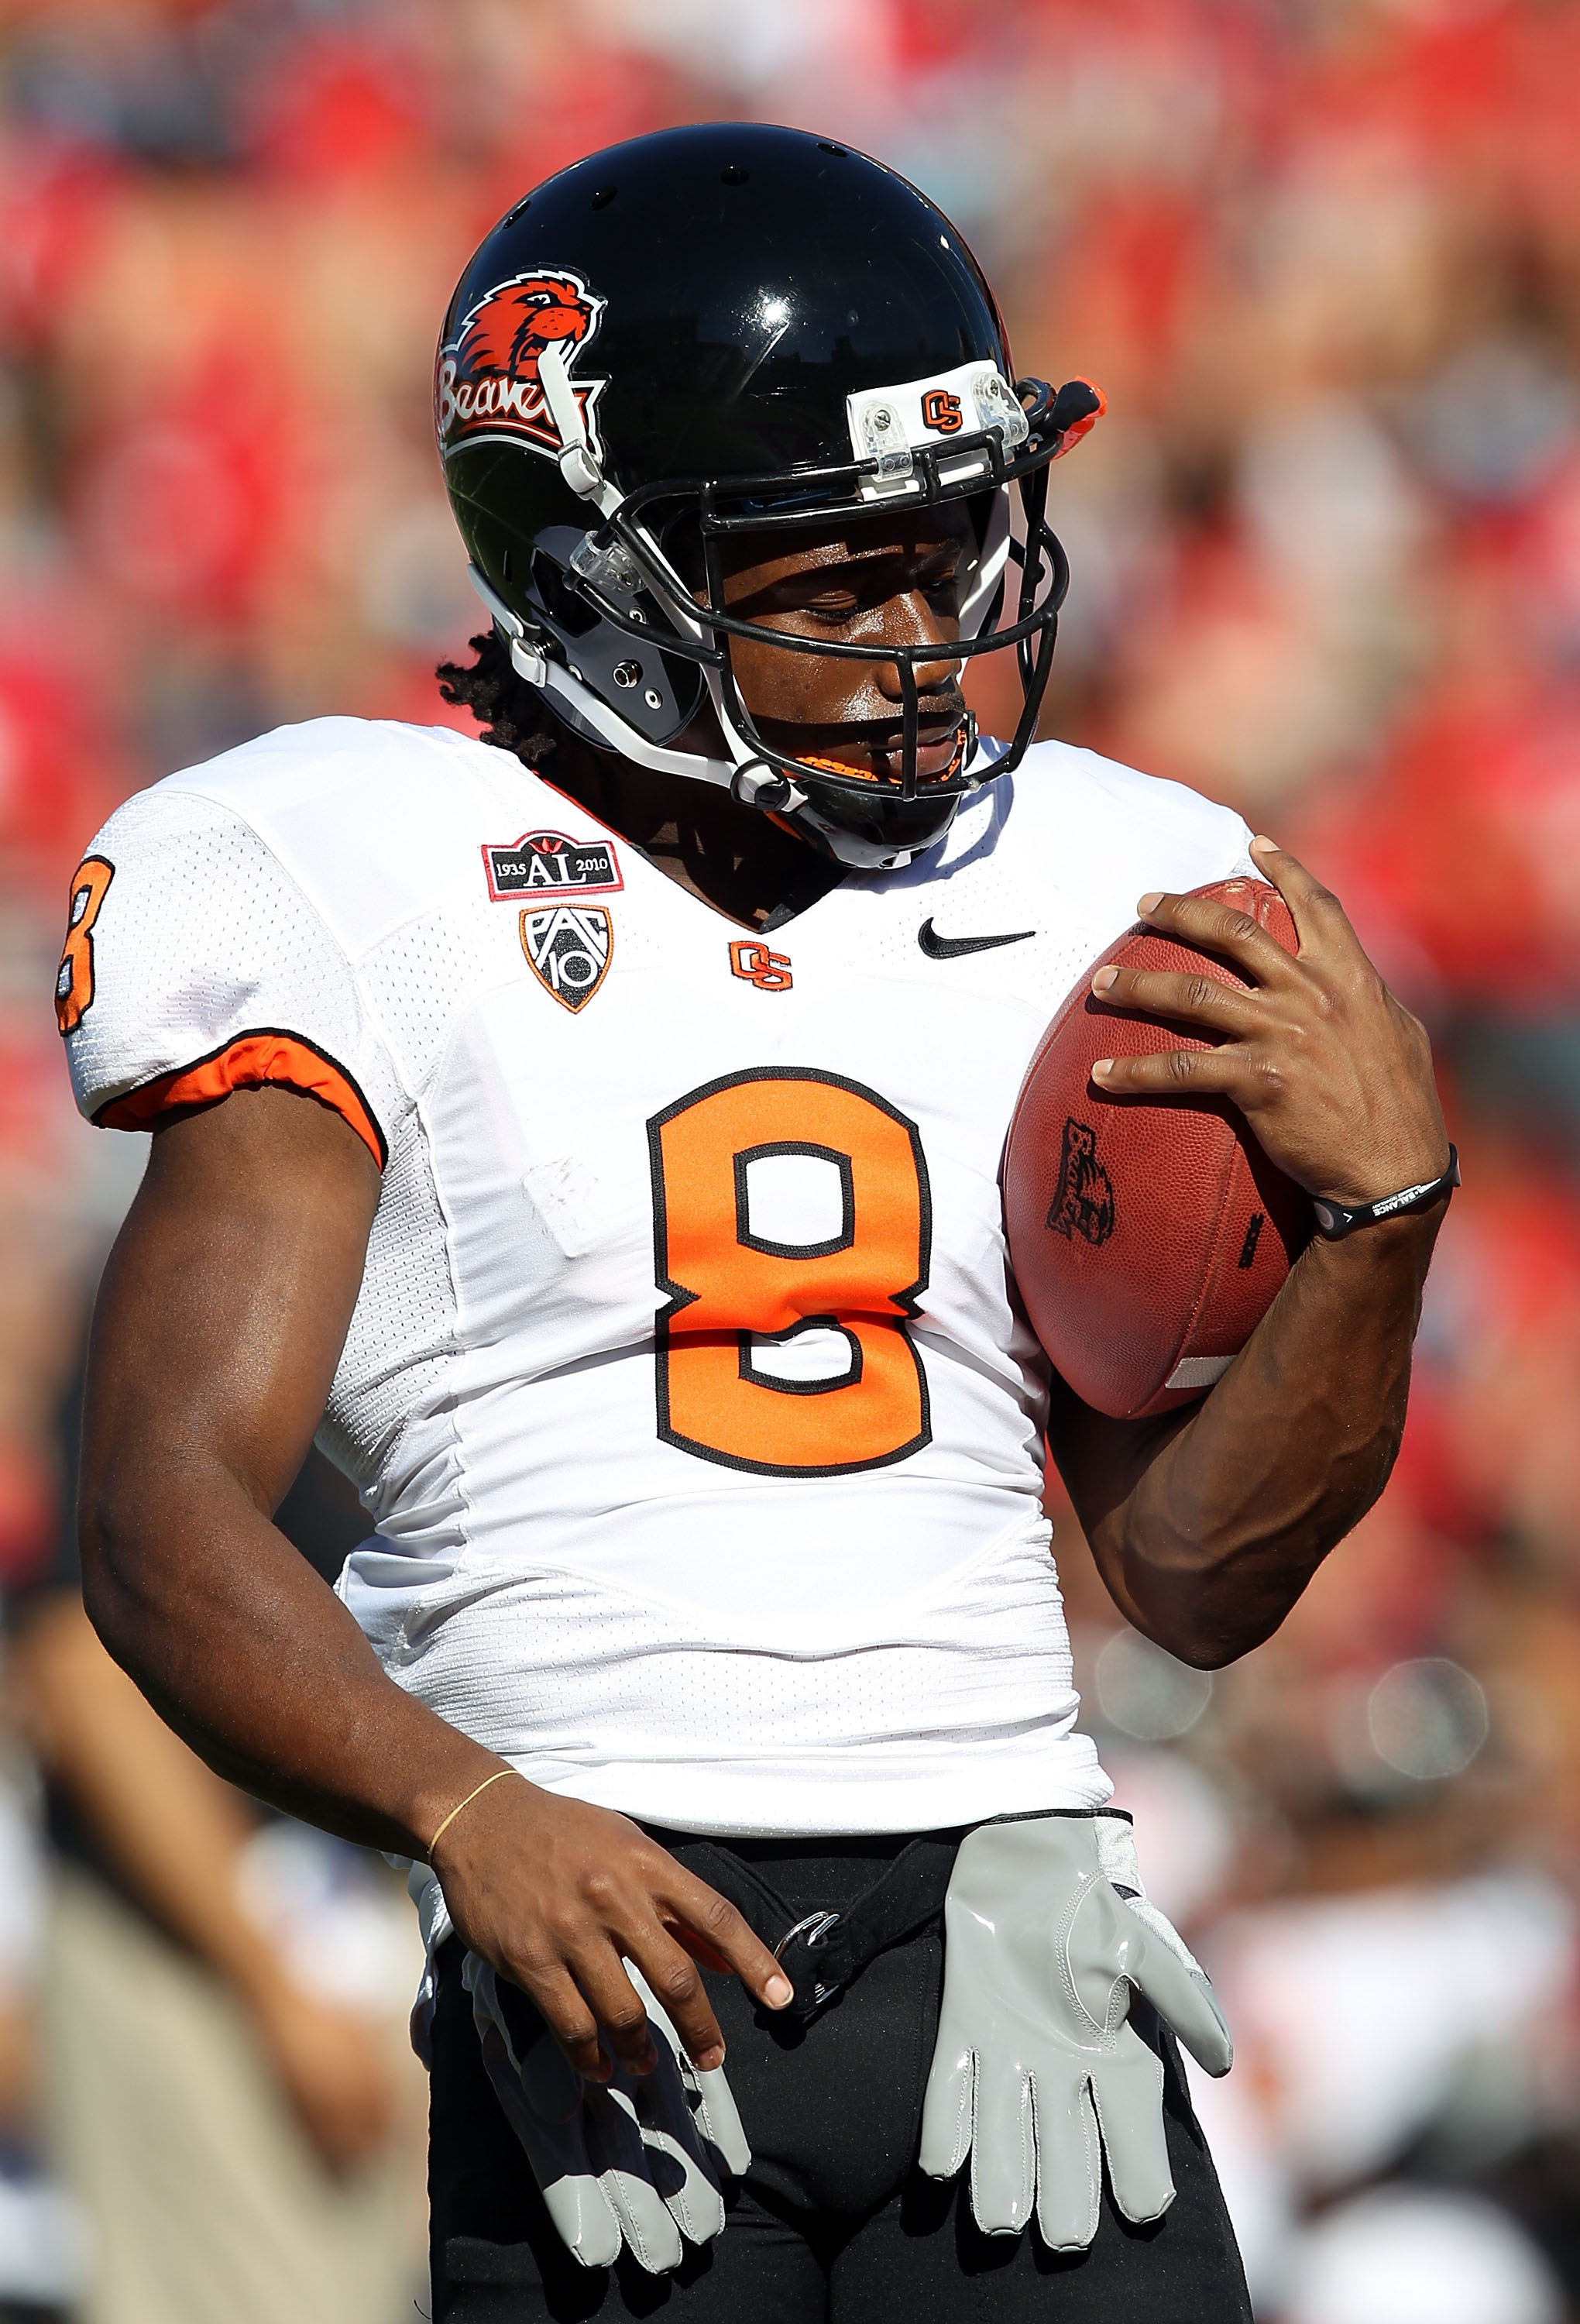 TUCSON, AZ - OCTOBER 09:  Wide receiver James Rodgers #8 of the Oregon State Beavers warms up before the college football game against the Arizona Wildcats at Arizona Stadium on October 9, 2010 in Tucson, Arizona. The Beavers defeated the Wildcats 29-27.